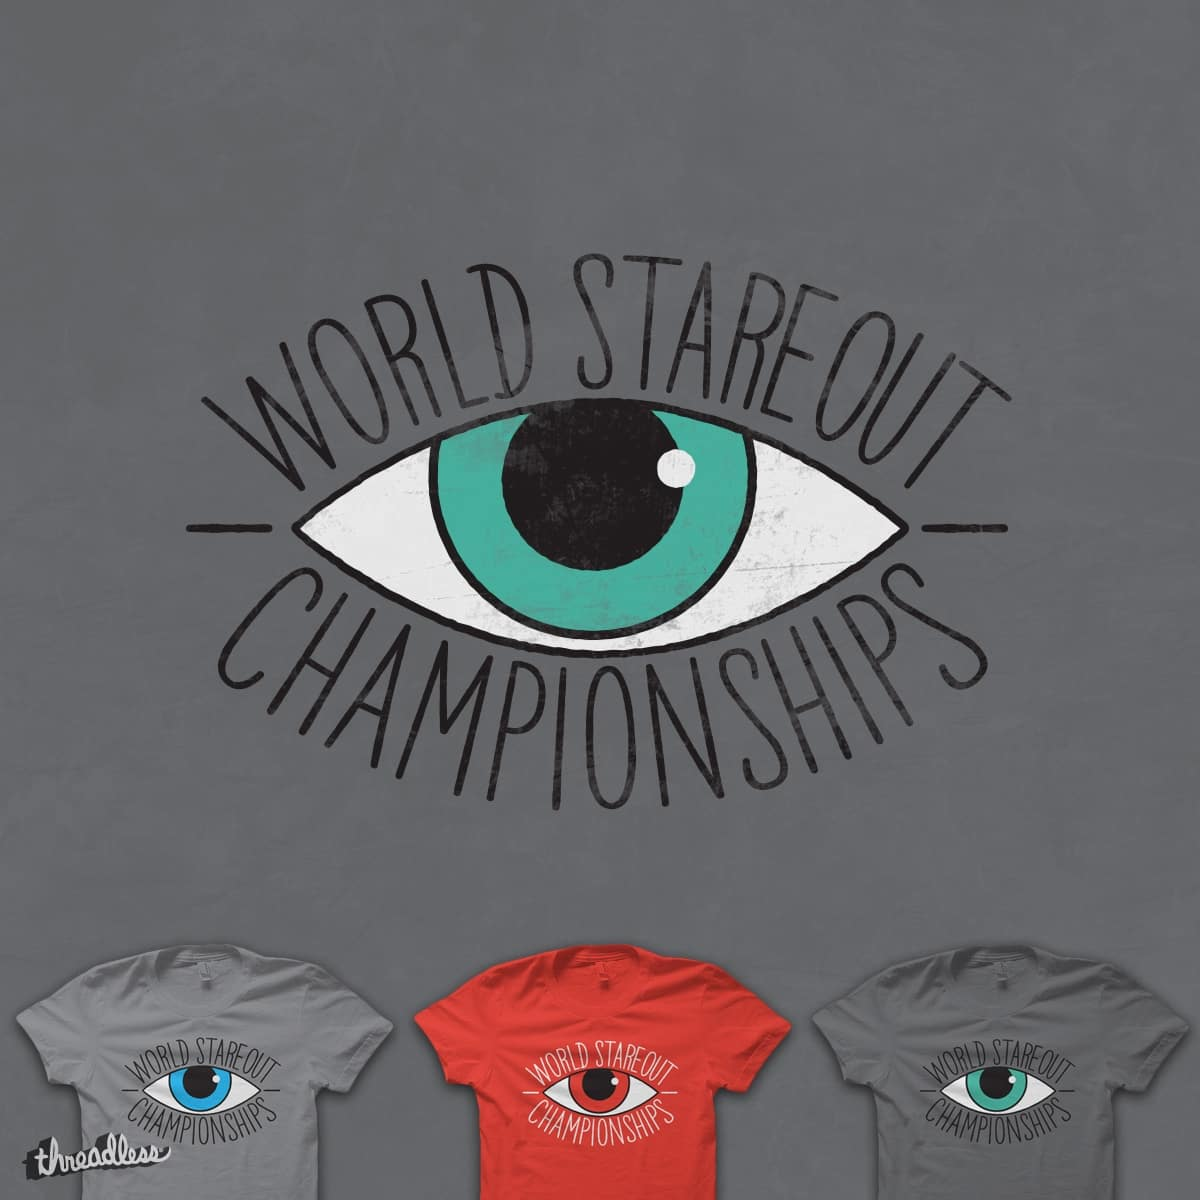 World Stare Out Champion by quick-brown-fox on Threadless